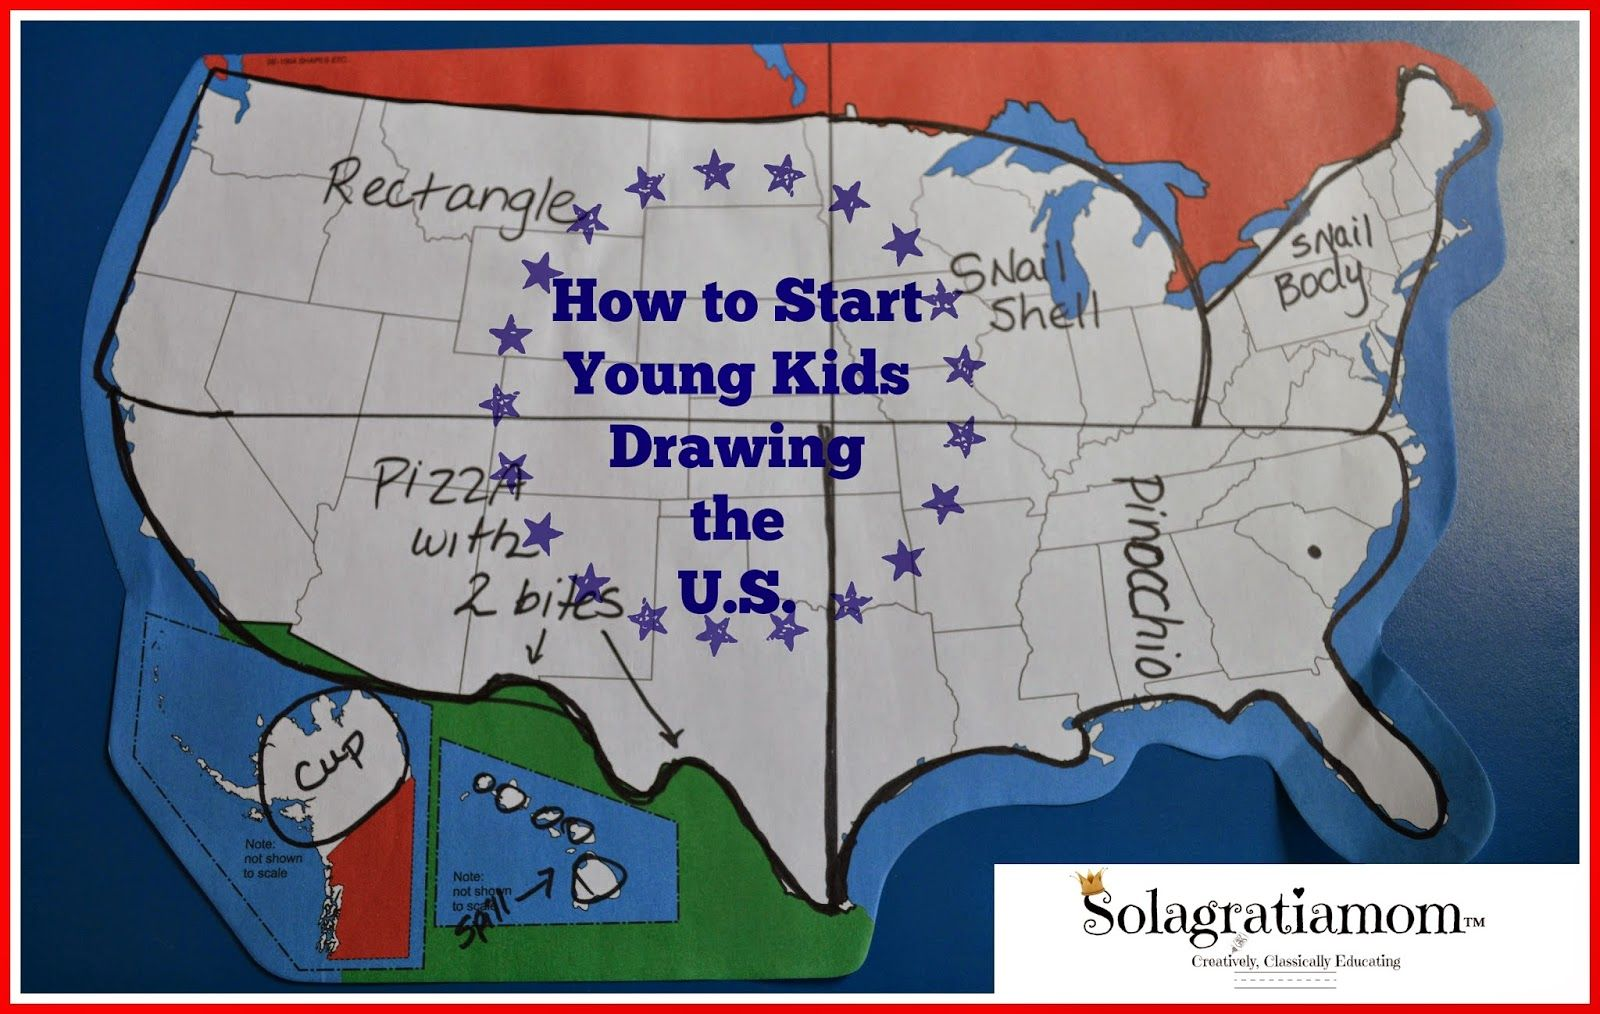 How to start young kids drawing the us sola gratia mom cycling how to start young kids drawing the us gumiabroncs Choice Image